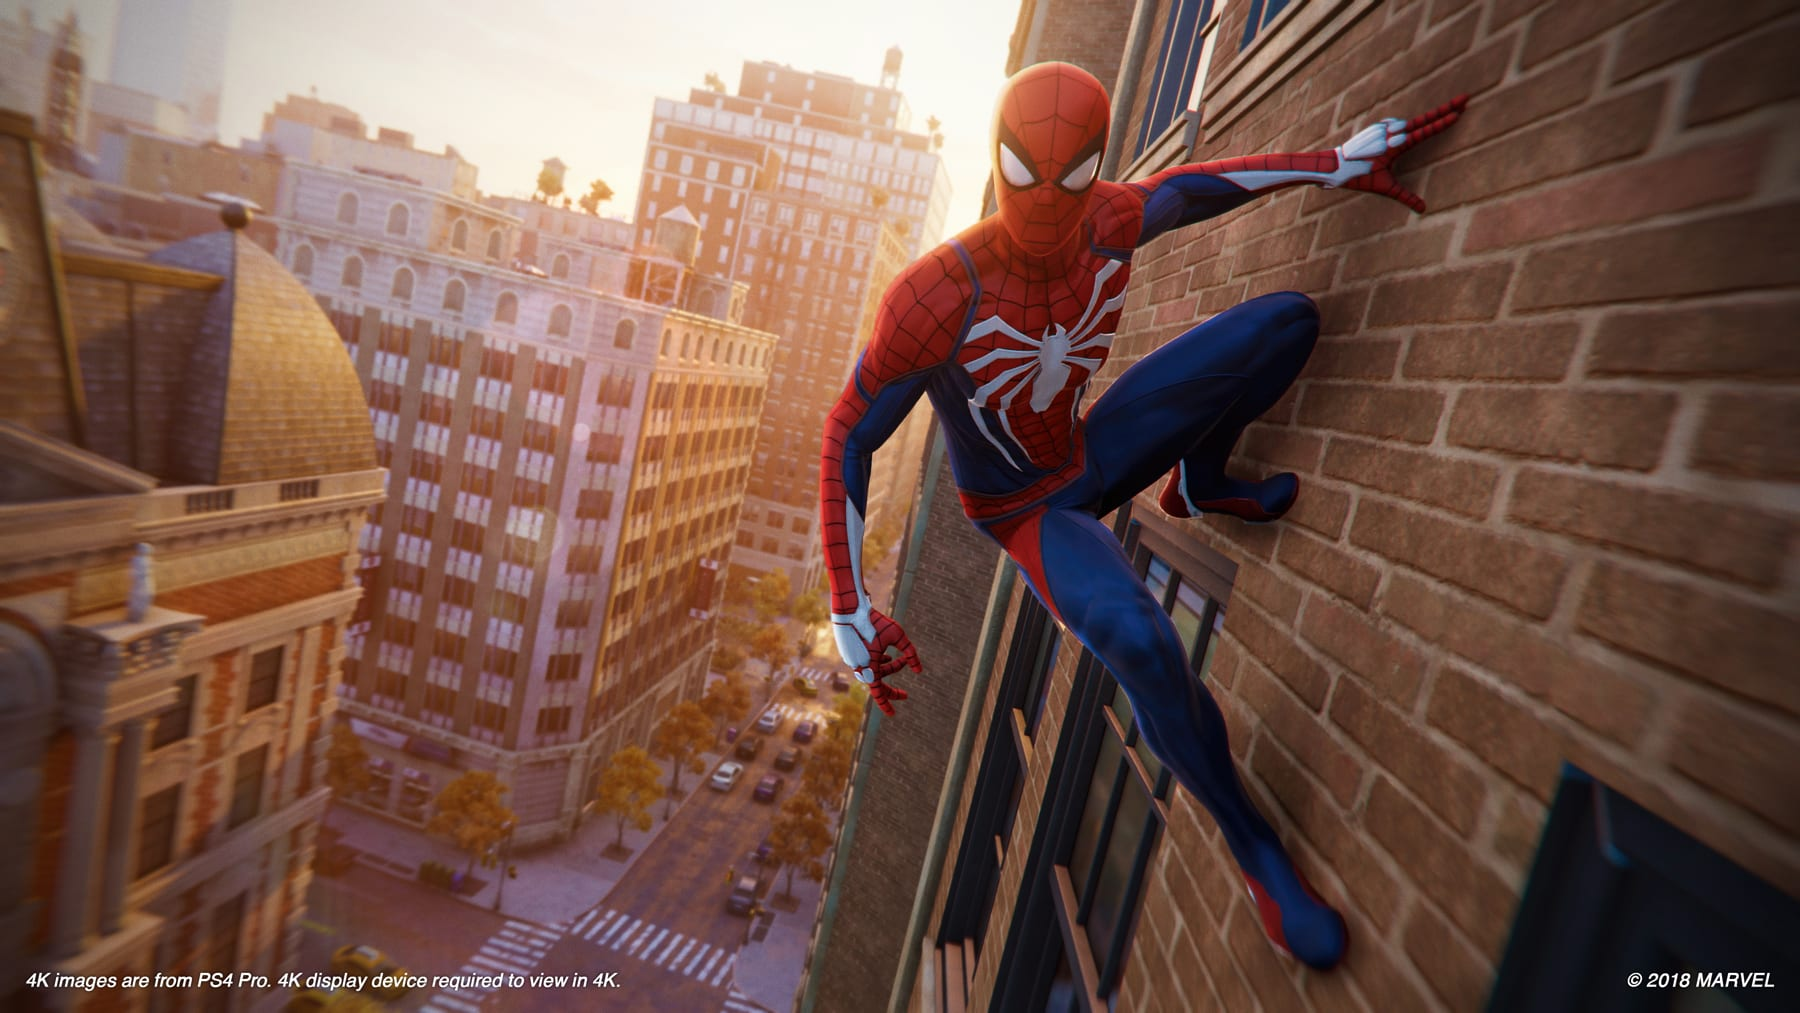 c6a56c37618 New York shines in Sony's new 'Spider-Man' game